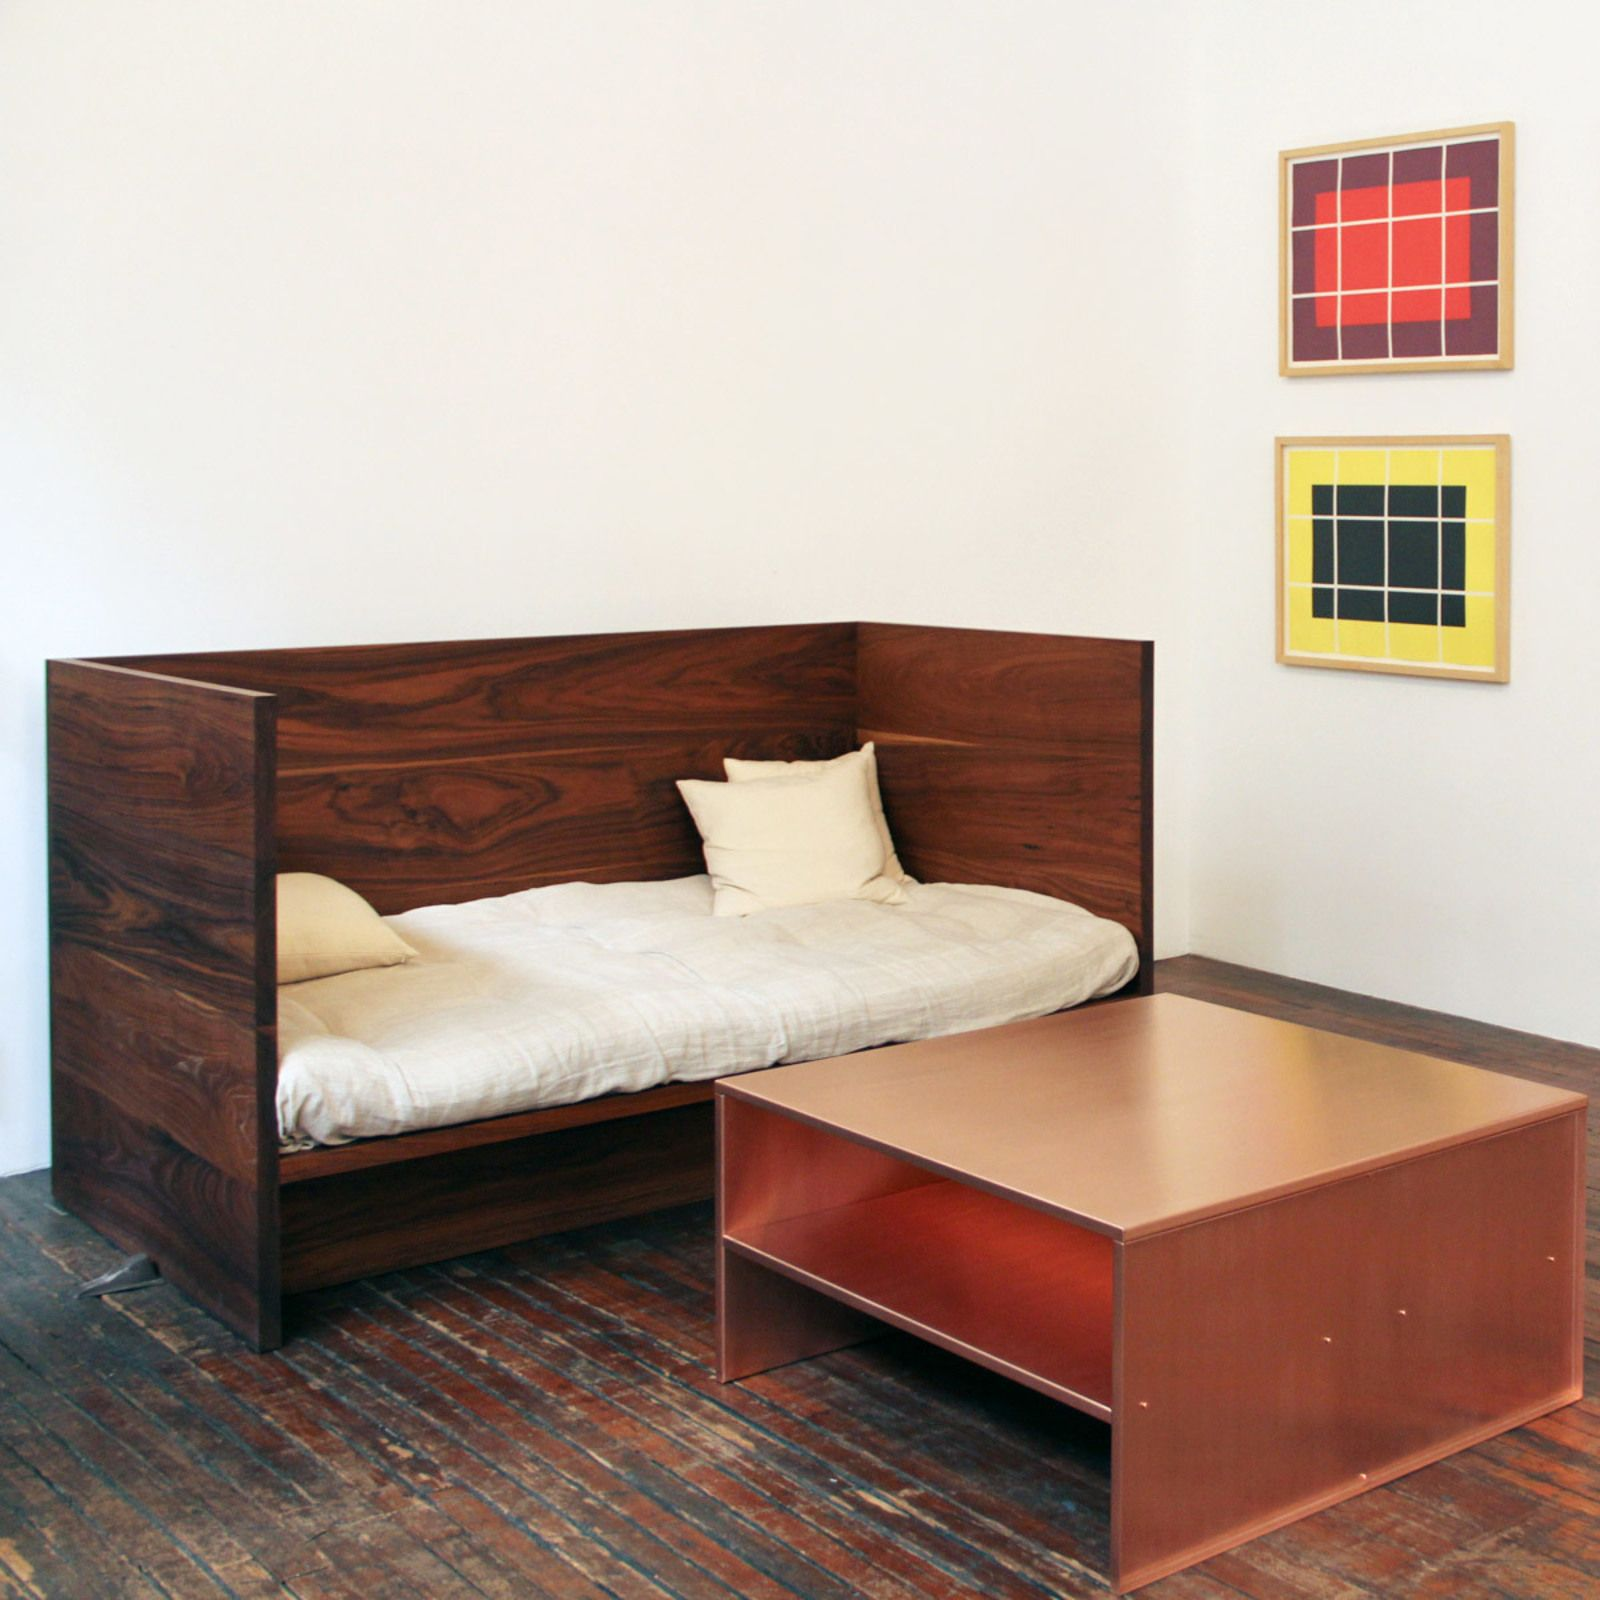 Donald Judd Prints Metal Furniture Furniture Nyc And Metals - Colorful judd side table with different variations